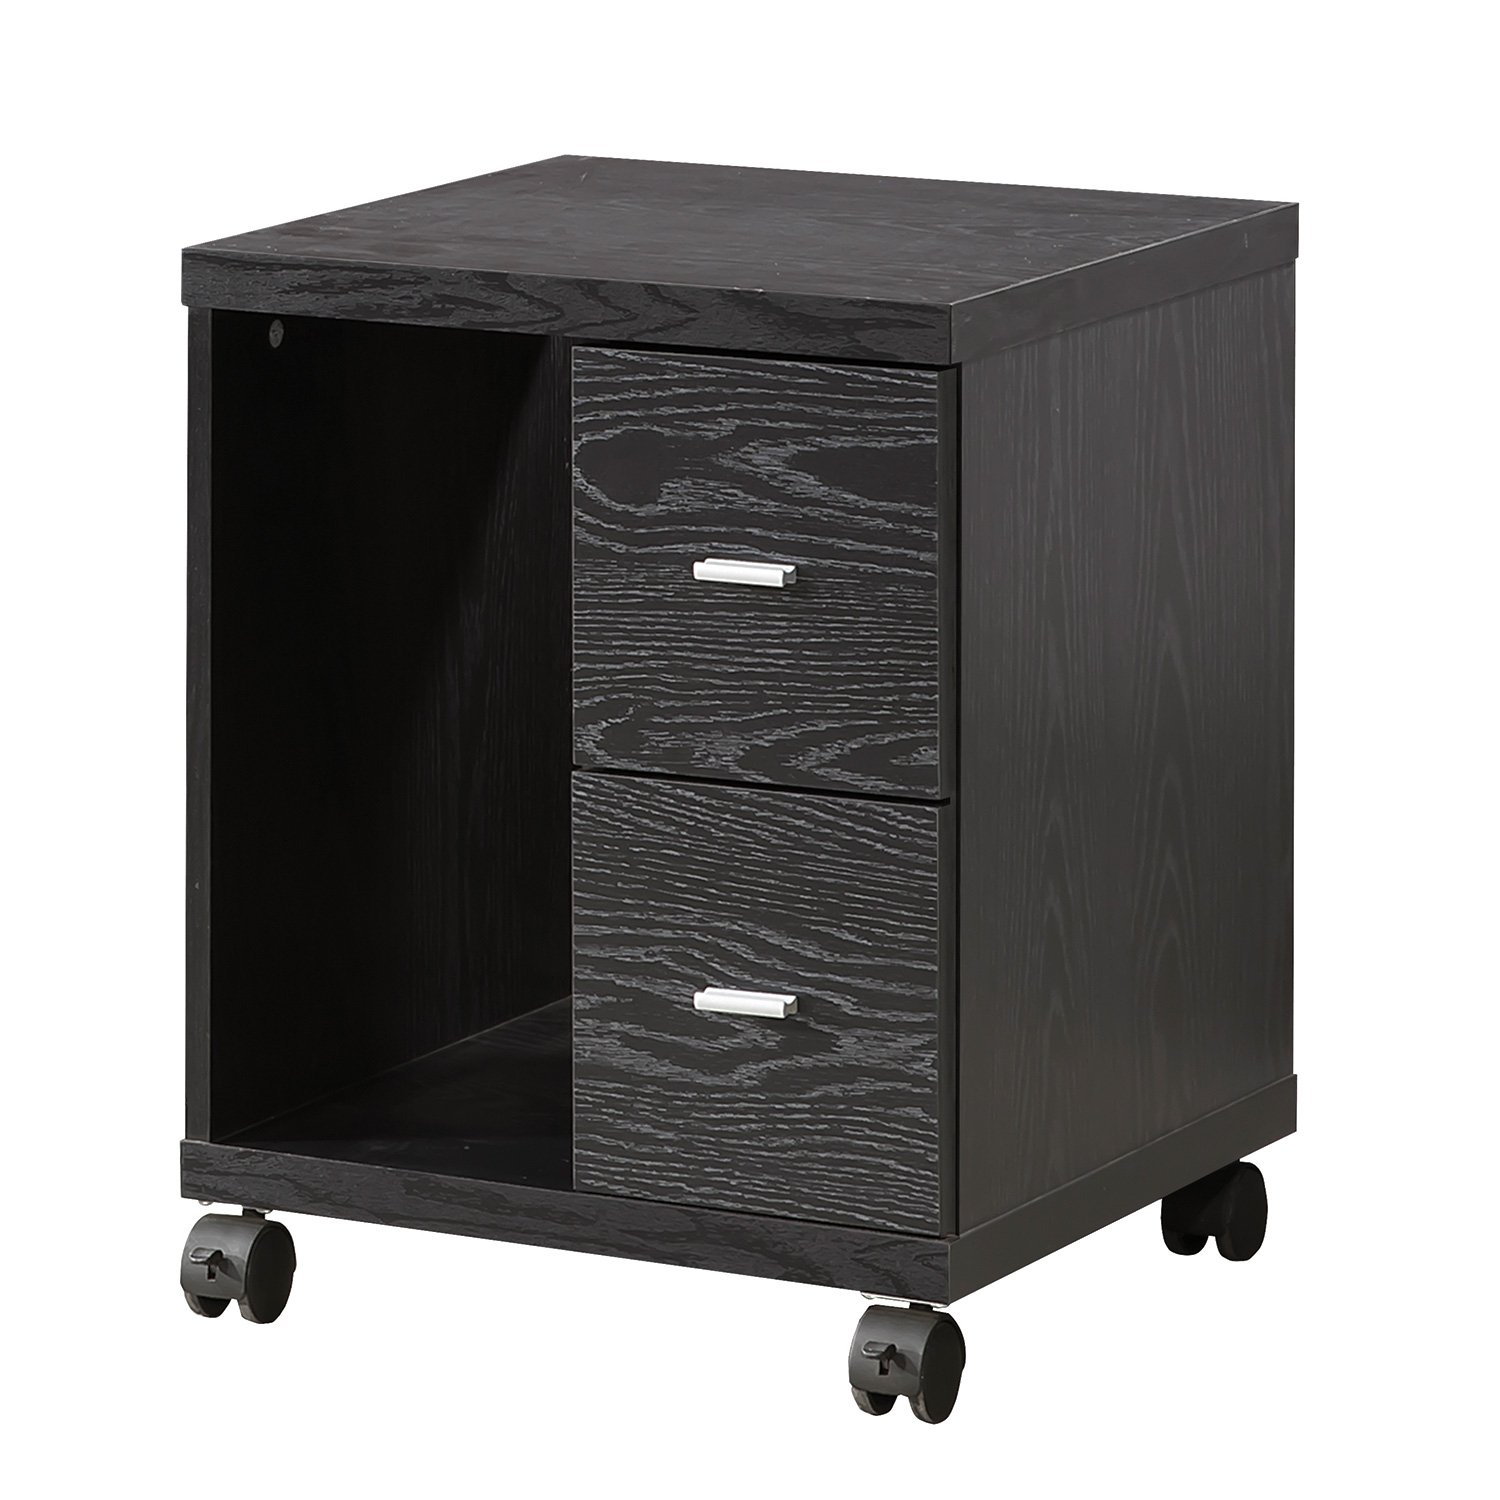 Peel 2-Drawer CPU Stand Black Oak by Coaster Home Furnishings